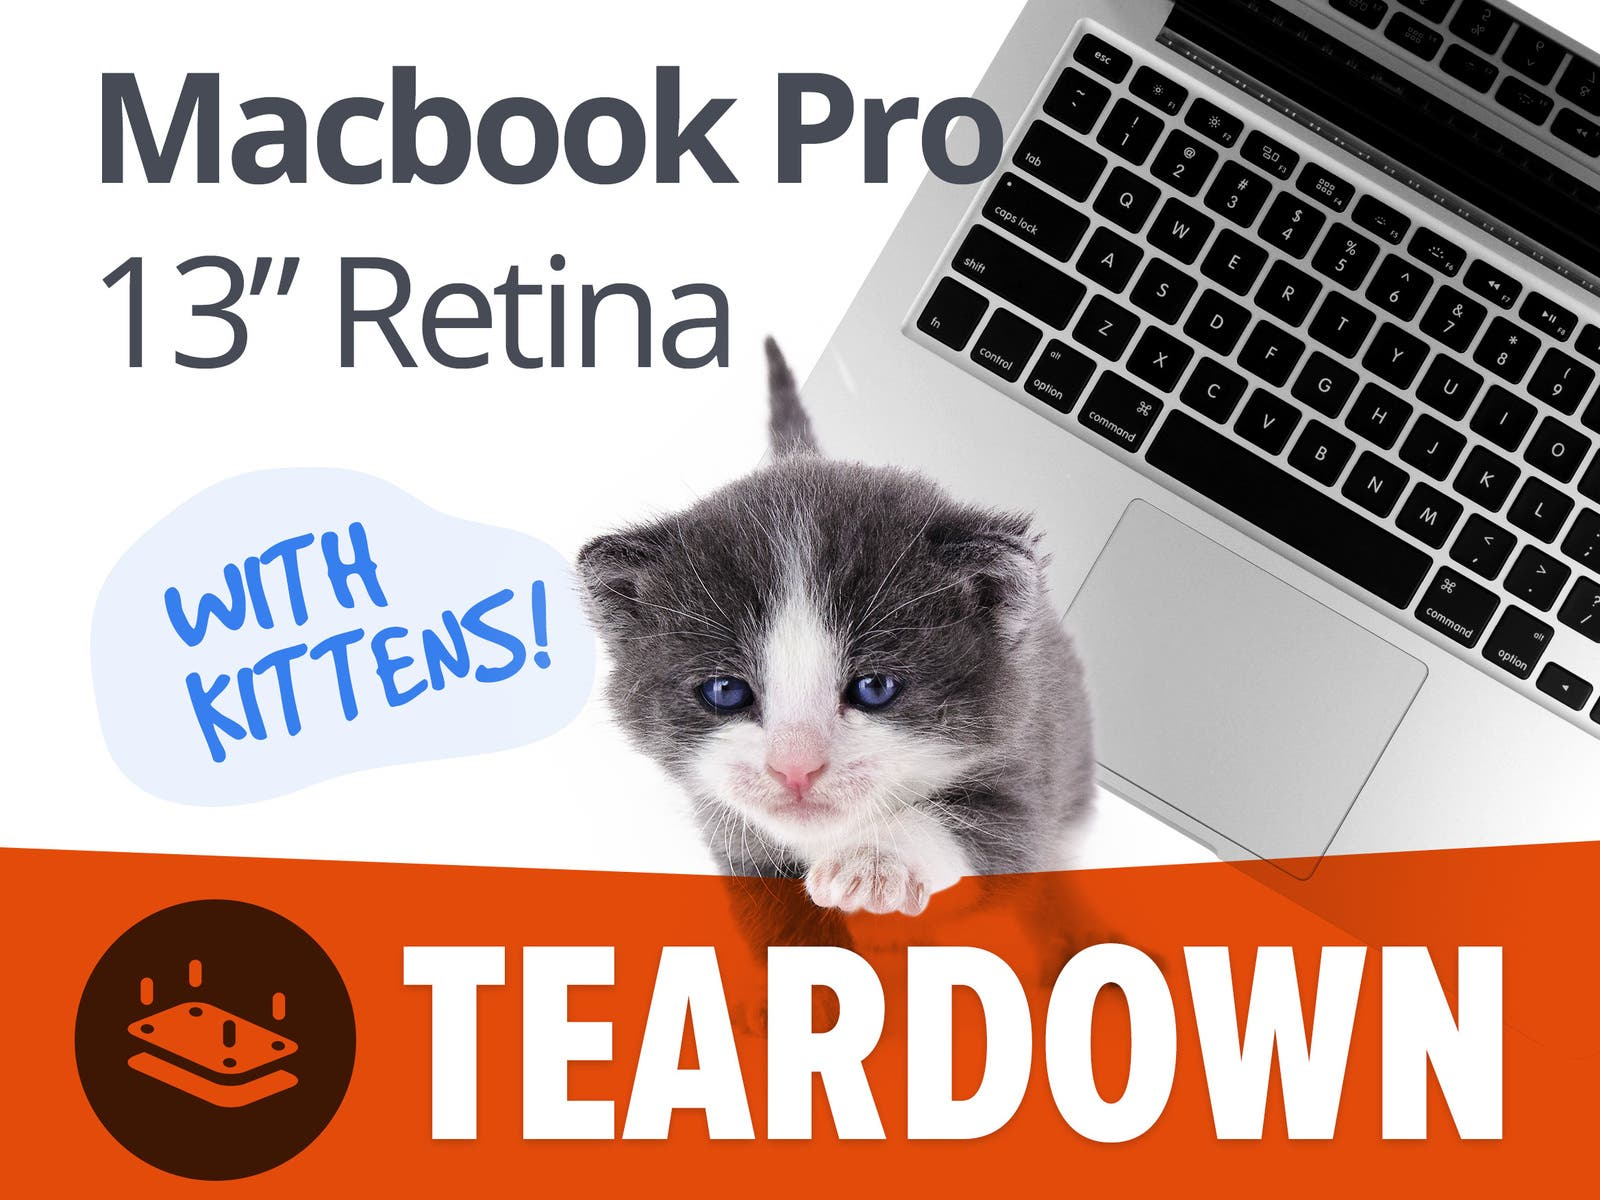 MacBook Pro 13 Retina Teardown iFixit